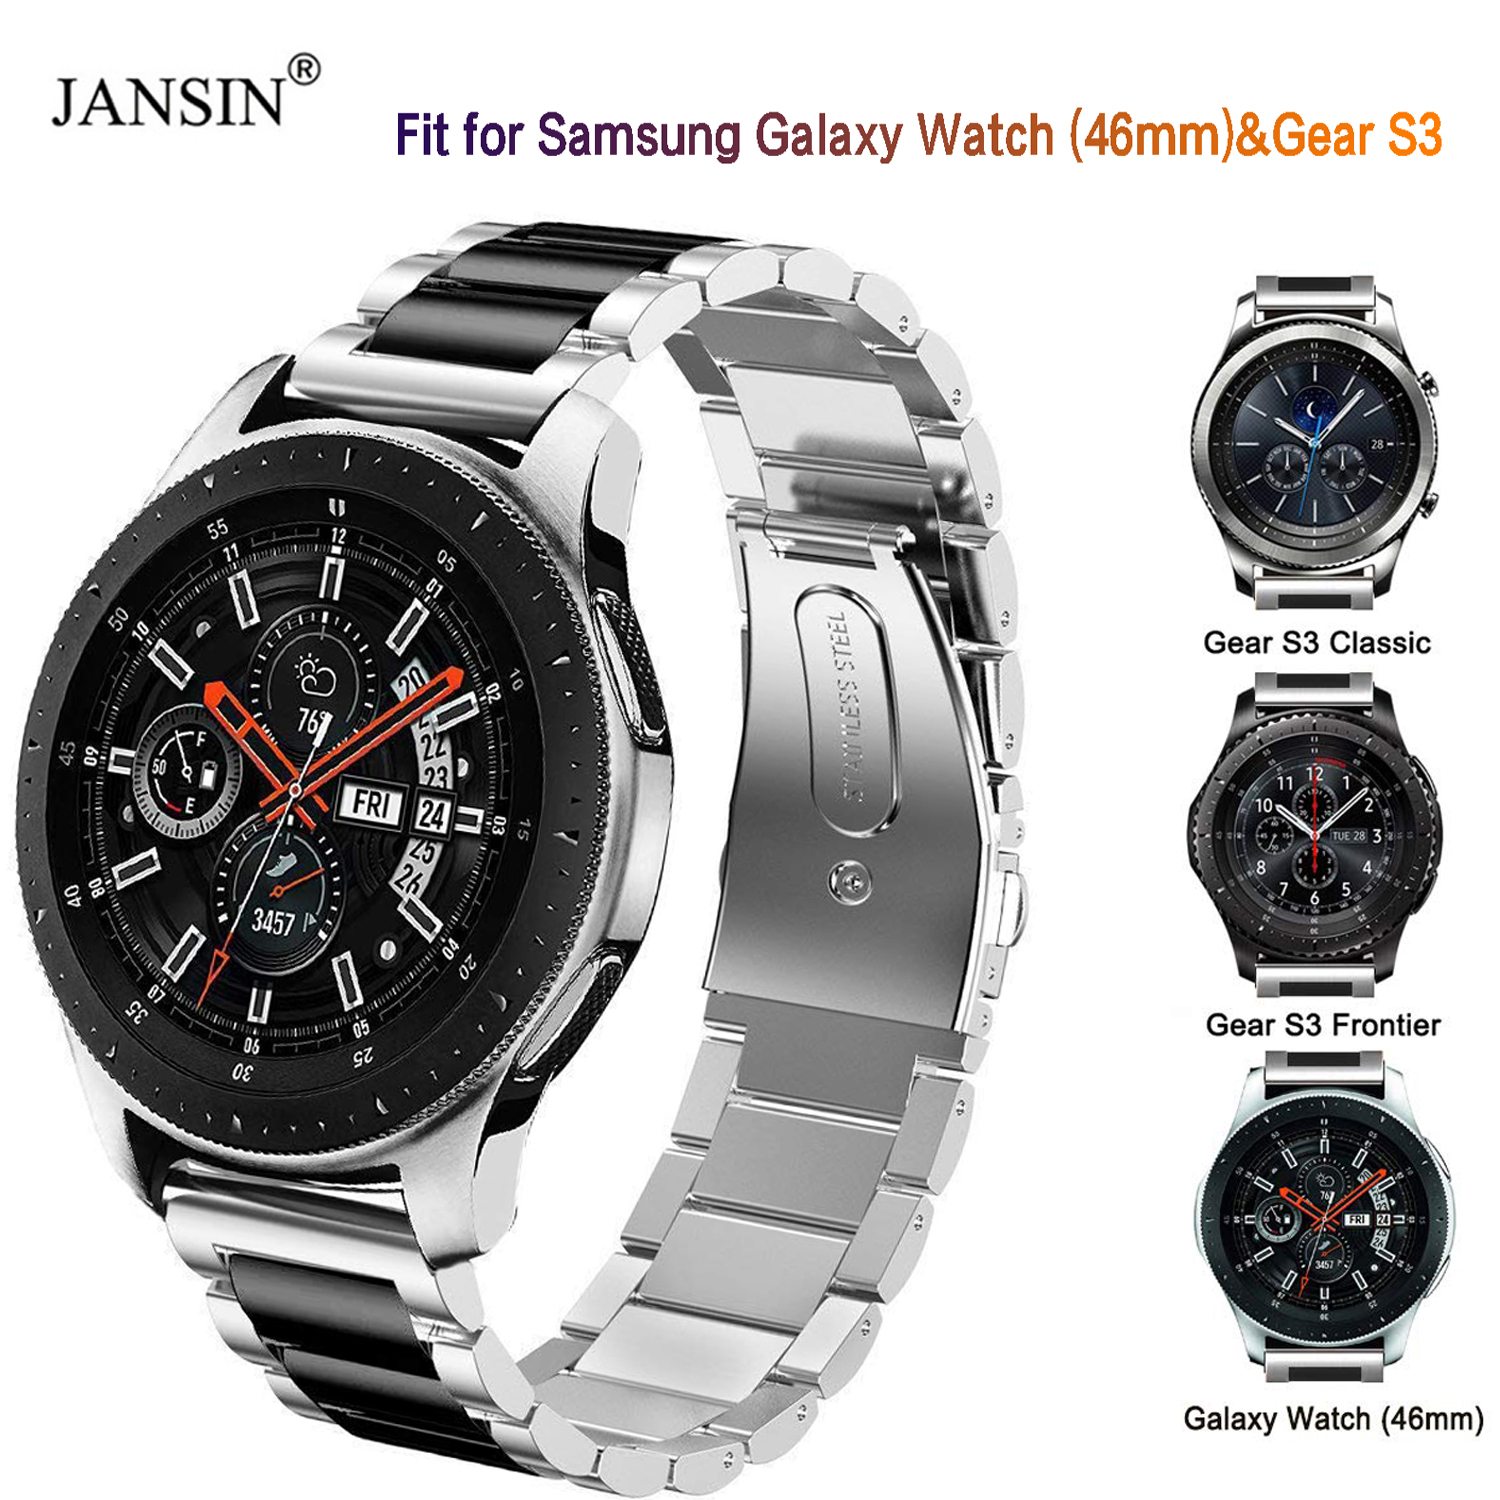 JANSIN Stainless Steel Metal Strap For Samsung Galaxy Watch 46mm/Gear S3 Frontier/S3 Classic Watchband Wrist Bracelet StrapJANSIN Stainless Steel Metal Strap For Samsung Galaxy Watch 46mm/Gear S3 Frontier/S3 Classic Watchband Wrist Bracelet Strap